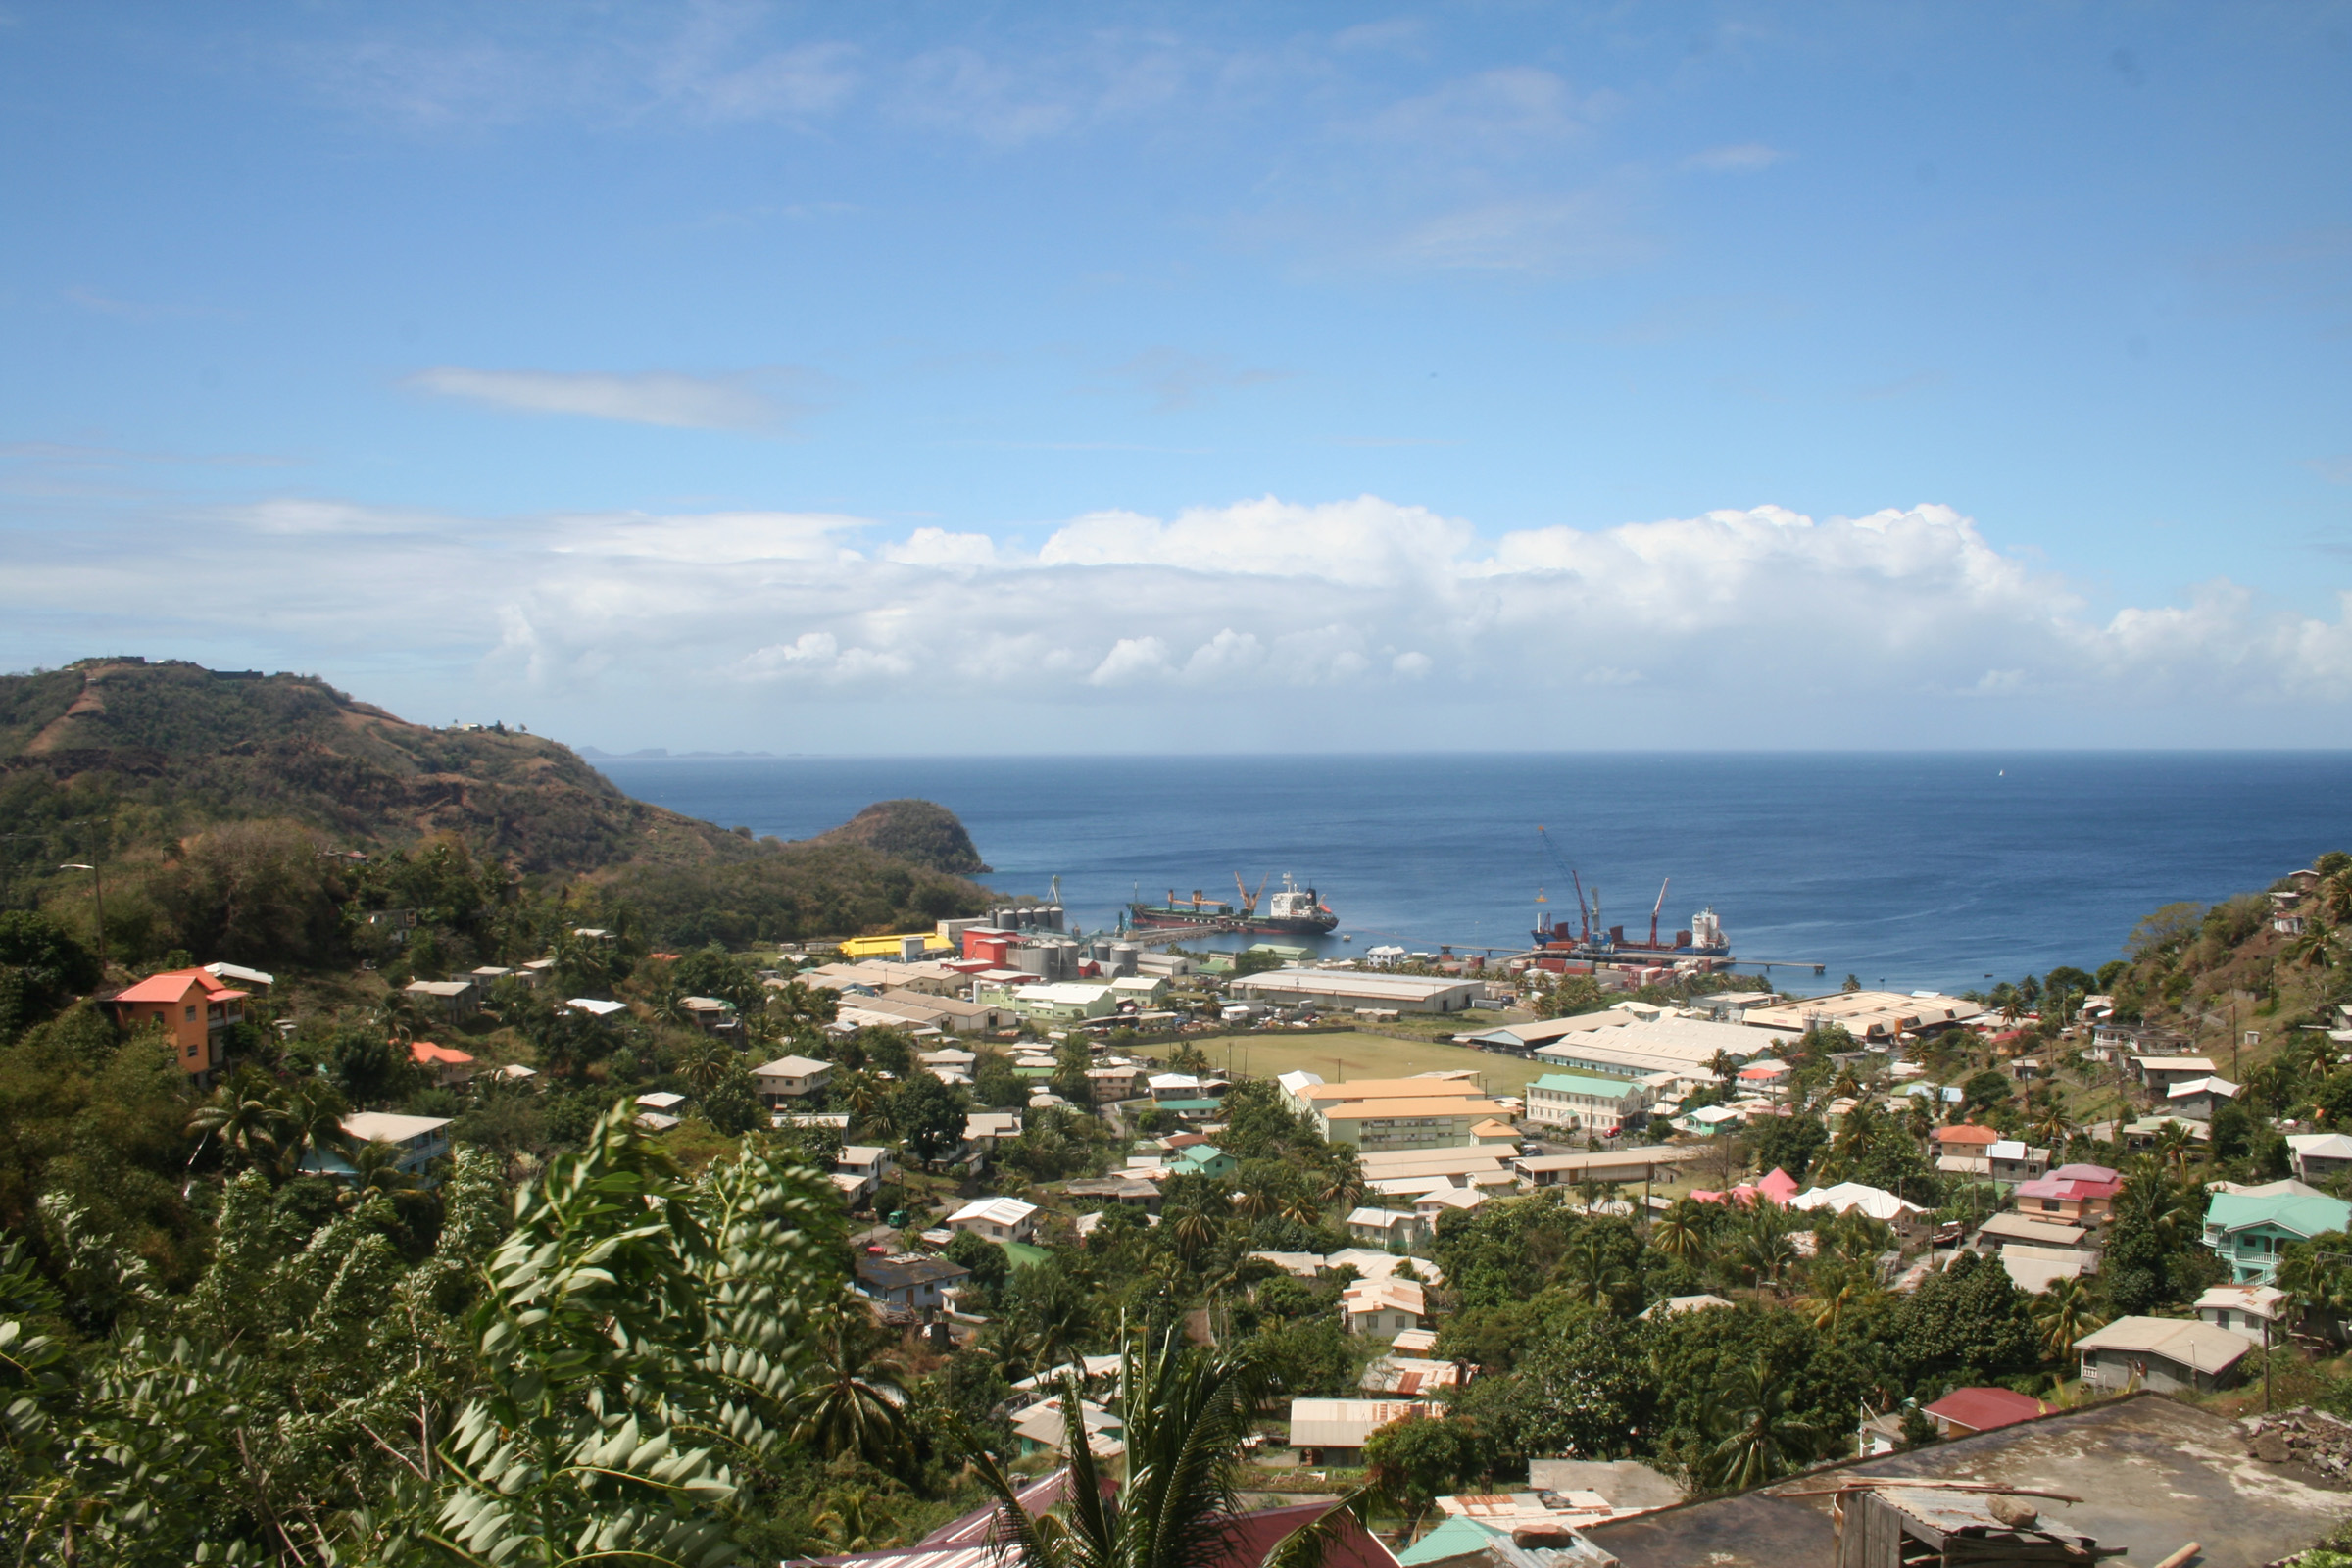 Kingstown, Saint Vincent and the Grenadines - by Carlos Sanz Ramírez